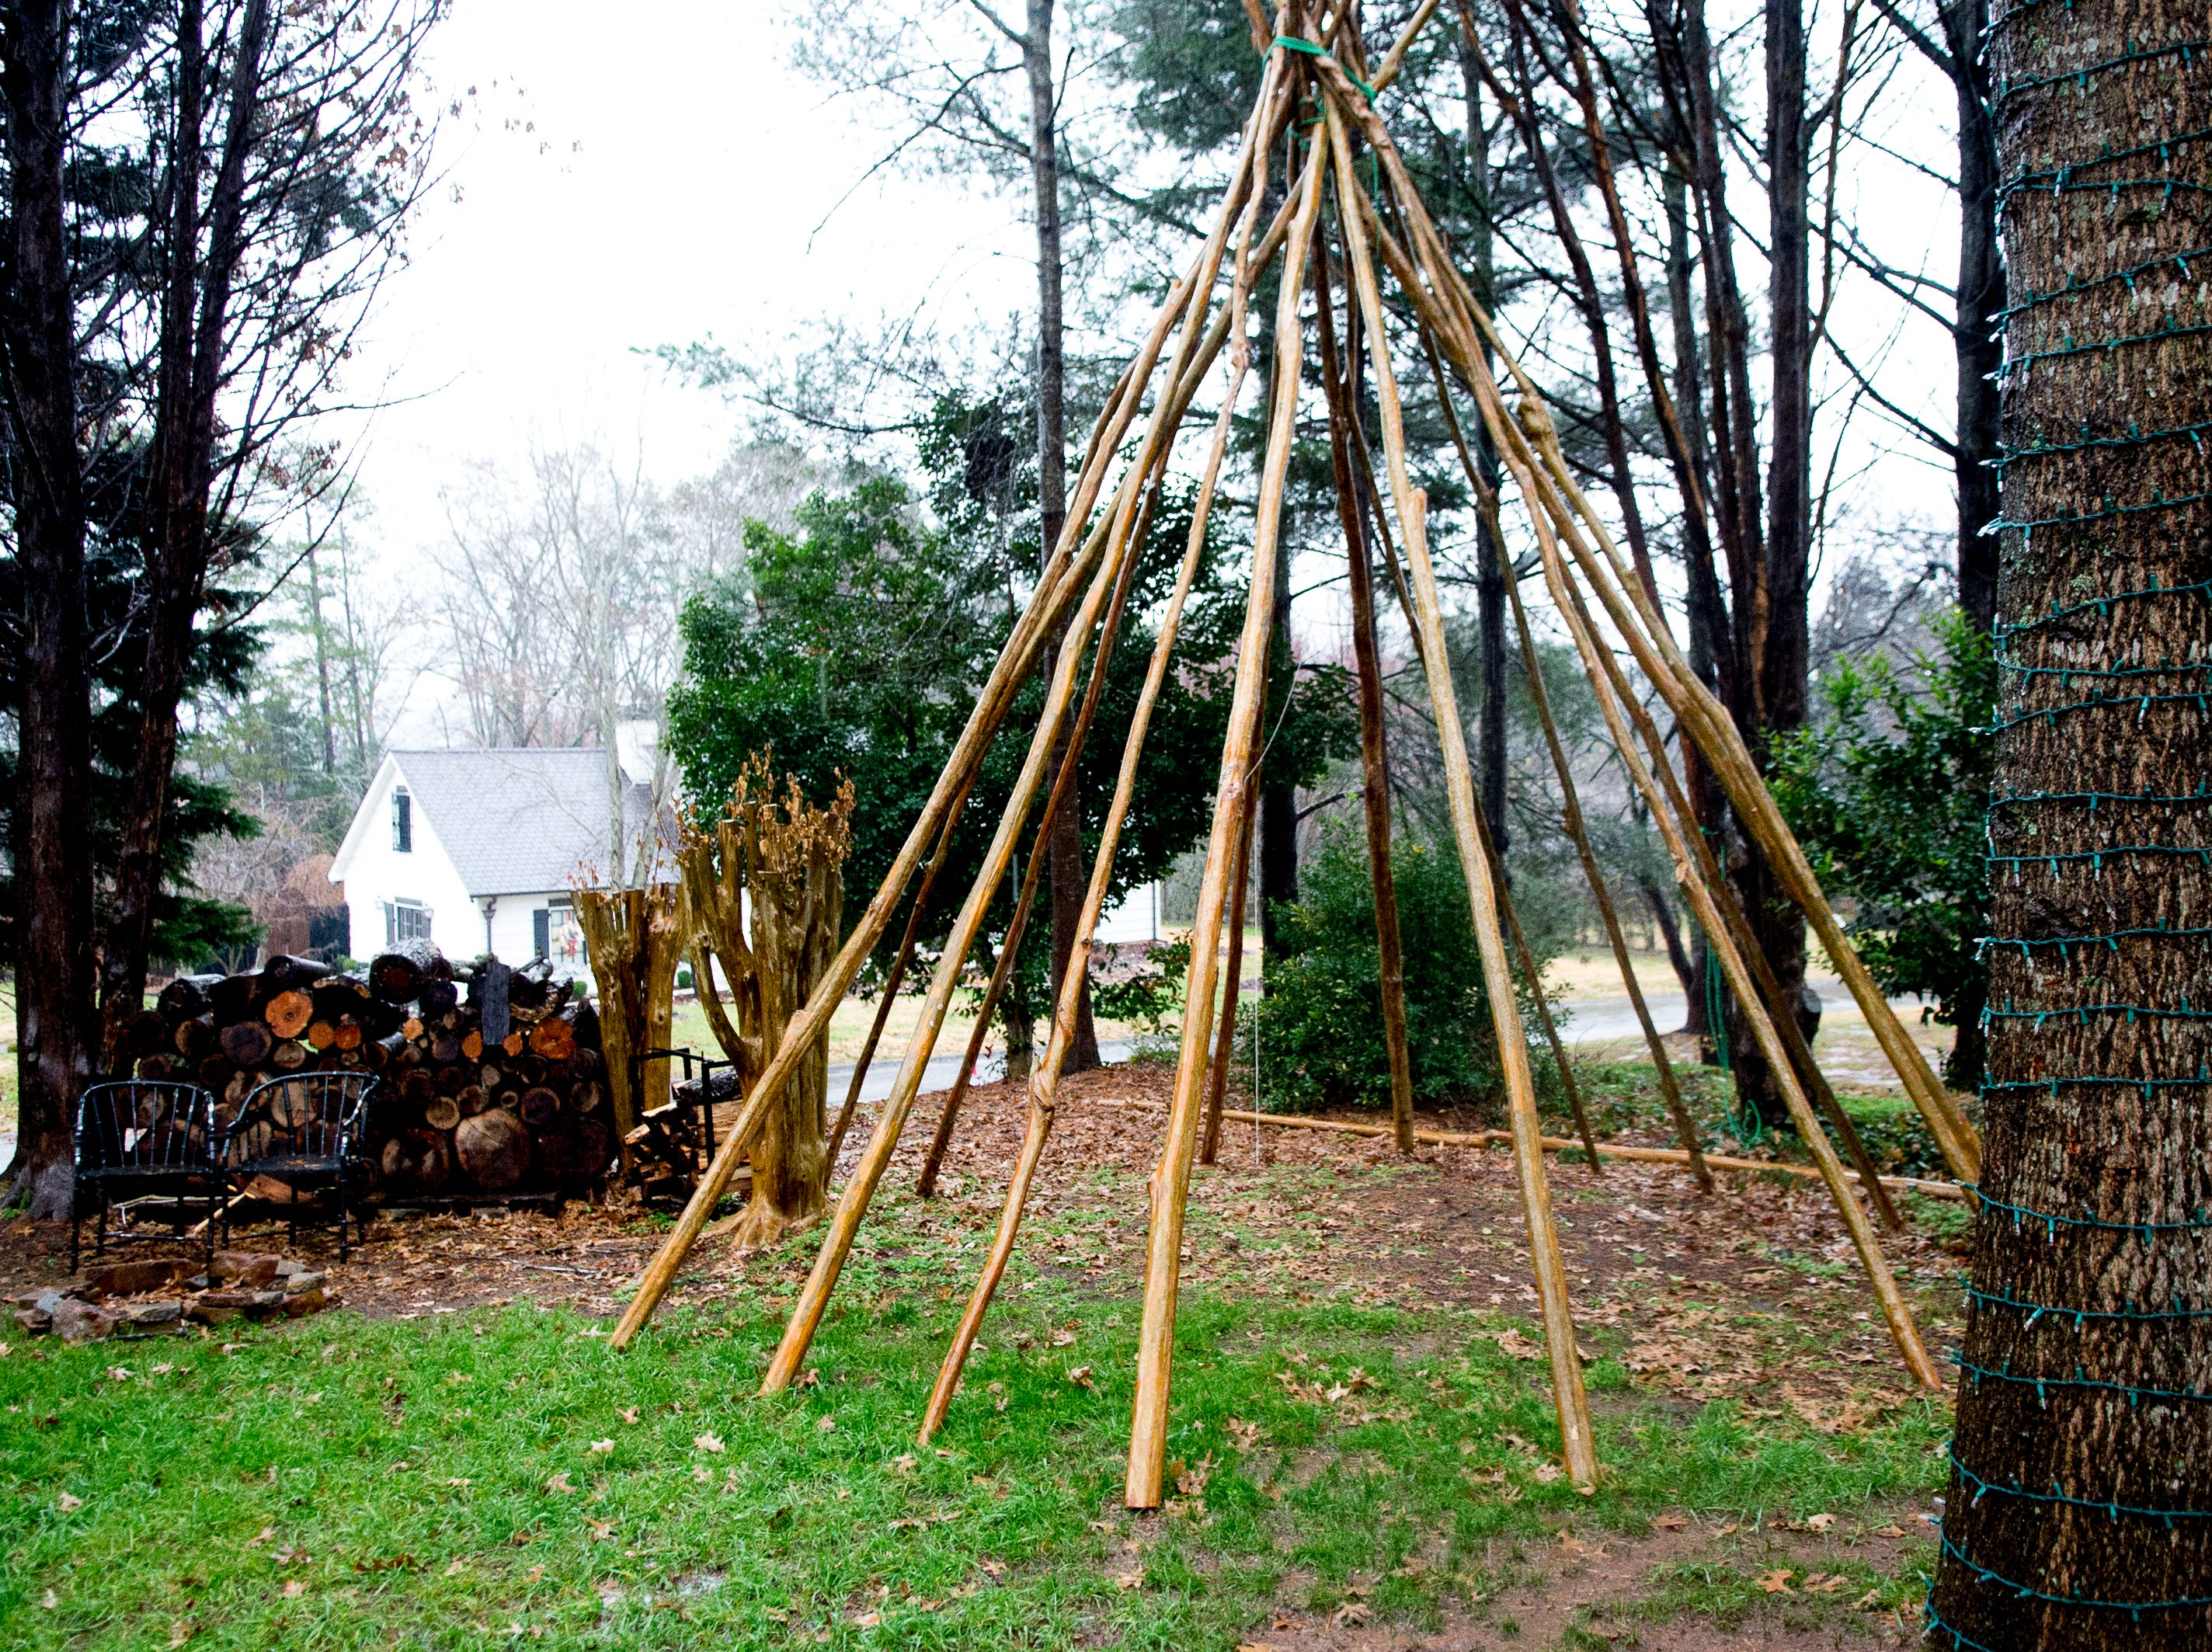 Matt Greiner built this tepee in the front yard with felled trees from the property at his family's home in West Knoxville.